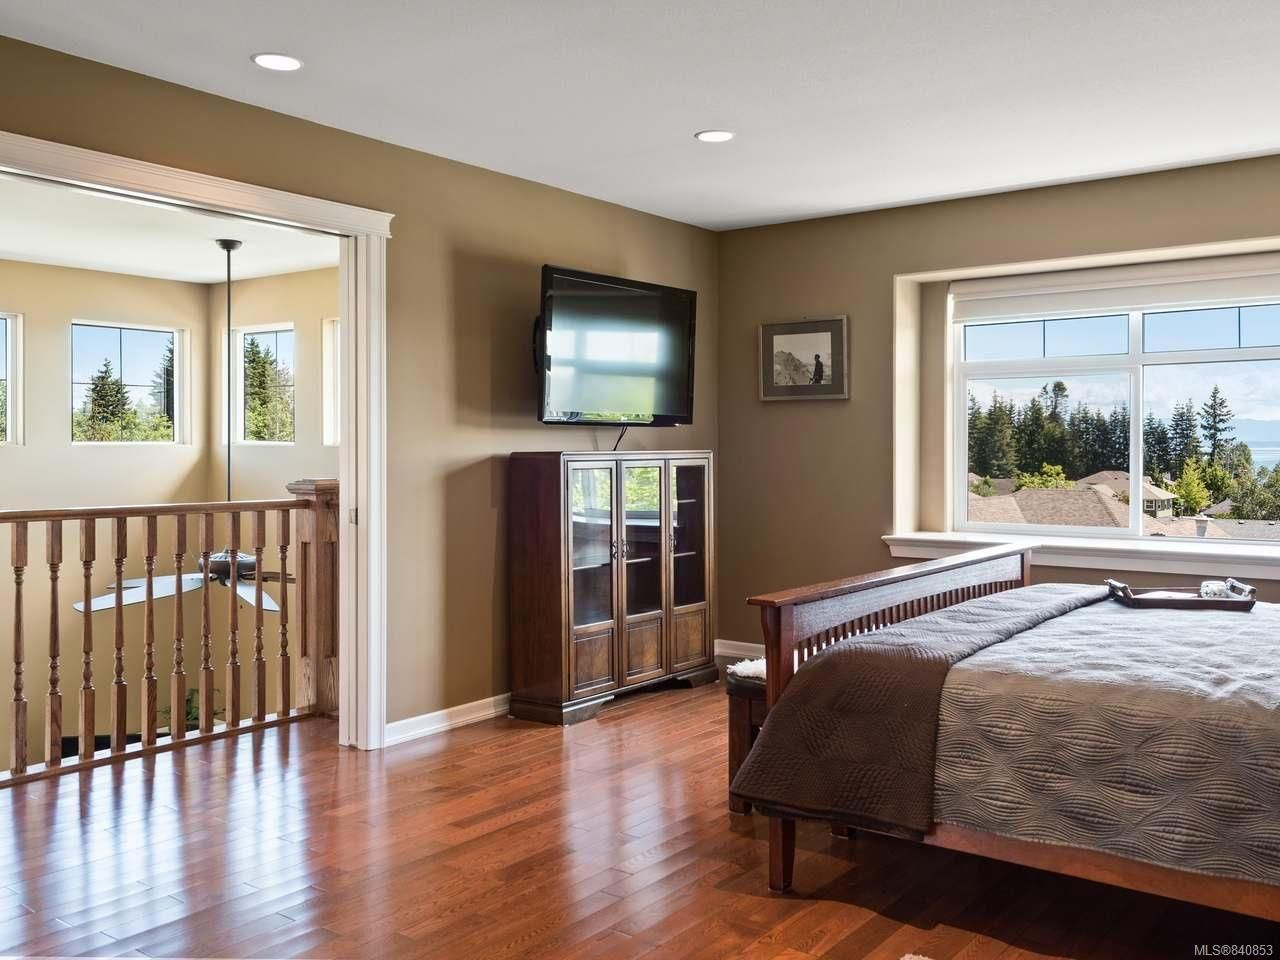 Photo 19: Photos: 206 Marie Pl in CAMPBELL RIVER: CR Willow Point House for sale (Campbell River)  : MLS®# 840853